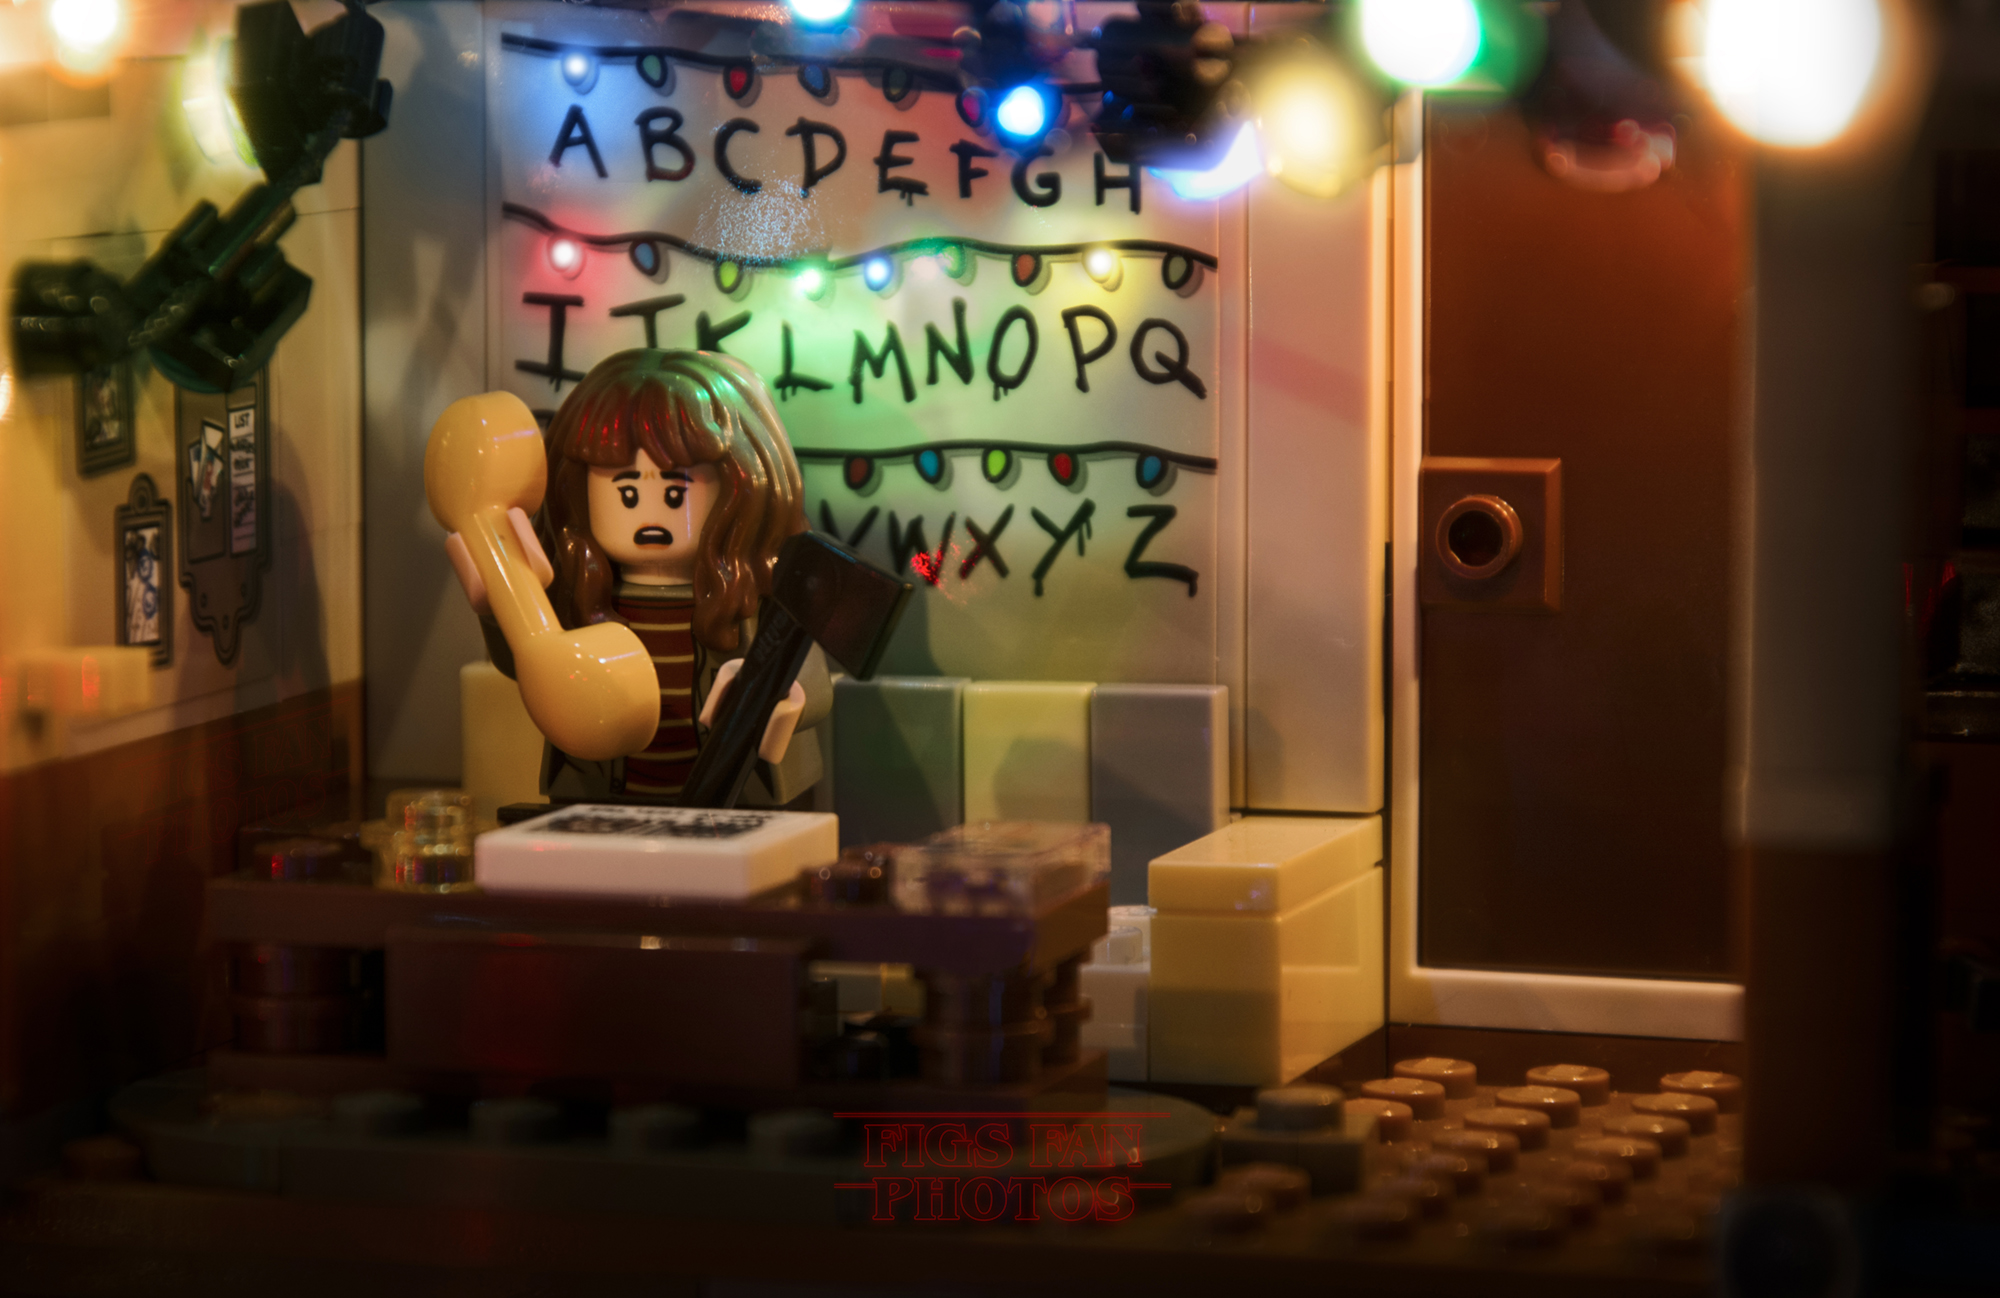 That's How The Stranger Things Would Look Like If It Had Been Directed By LEGO (16pics)